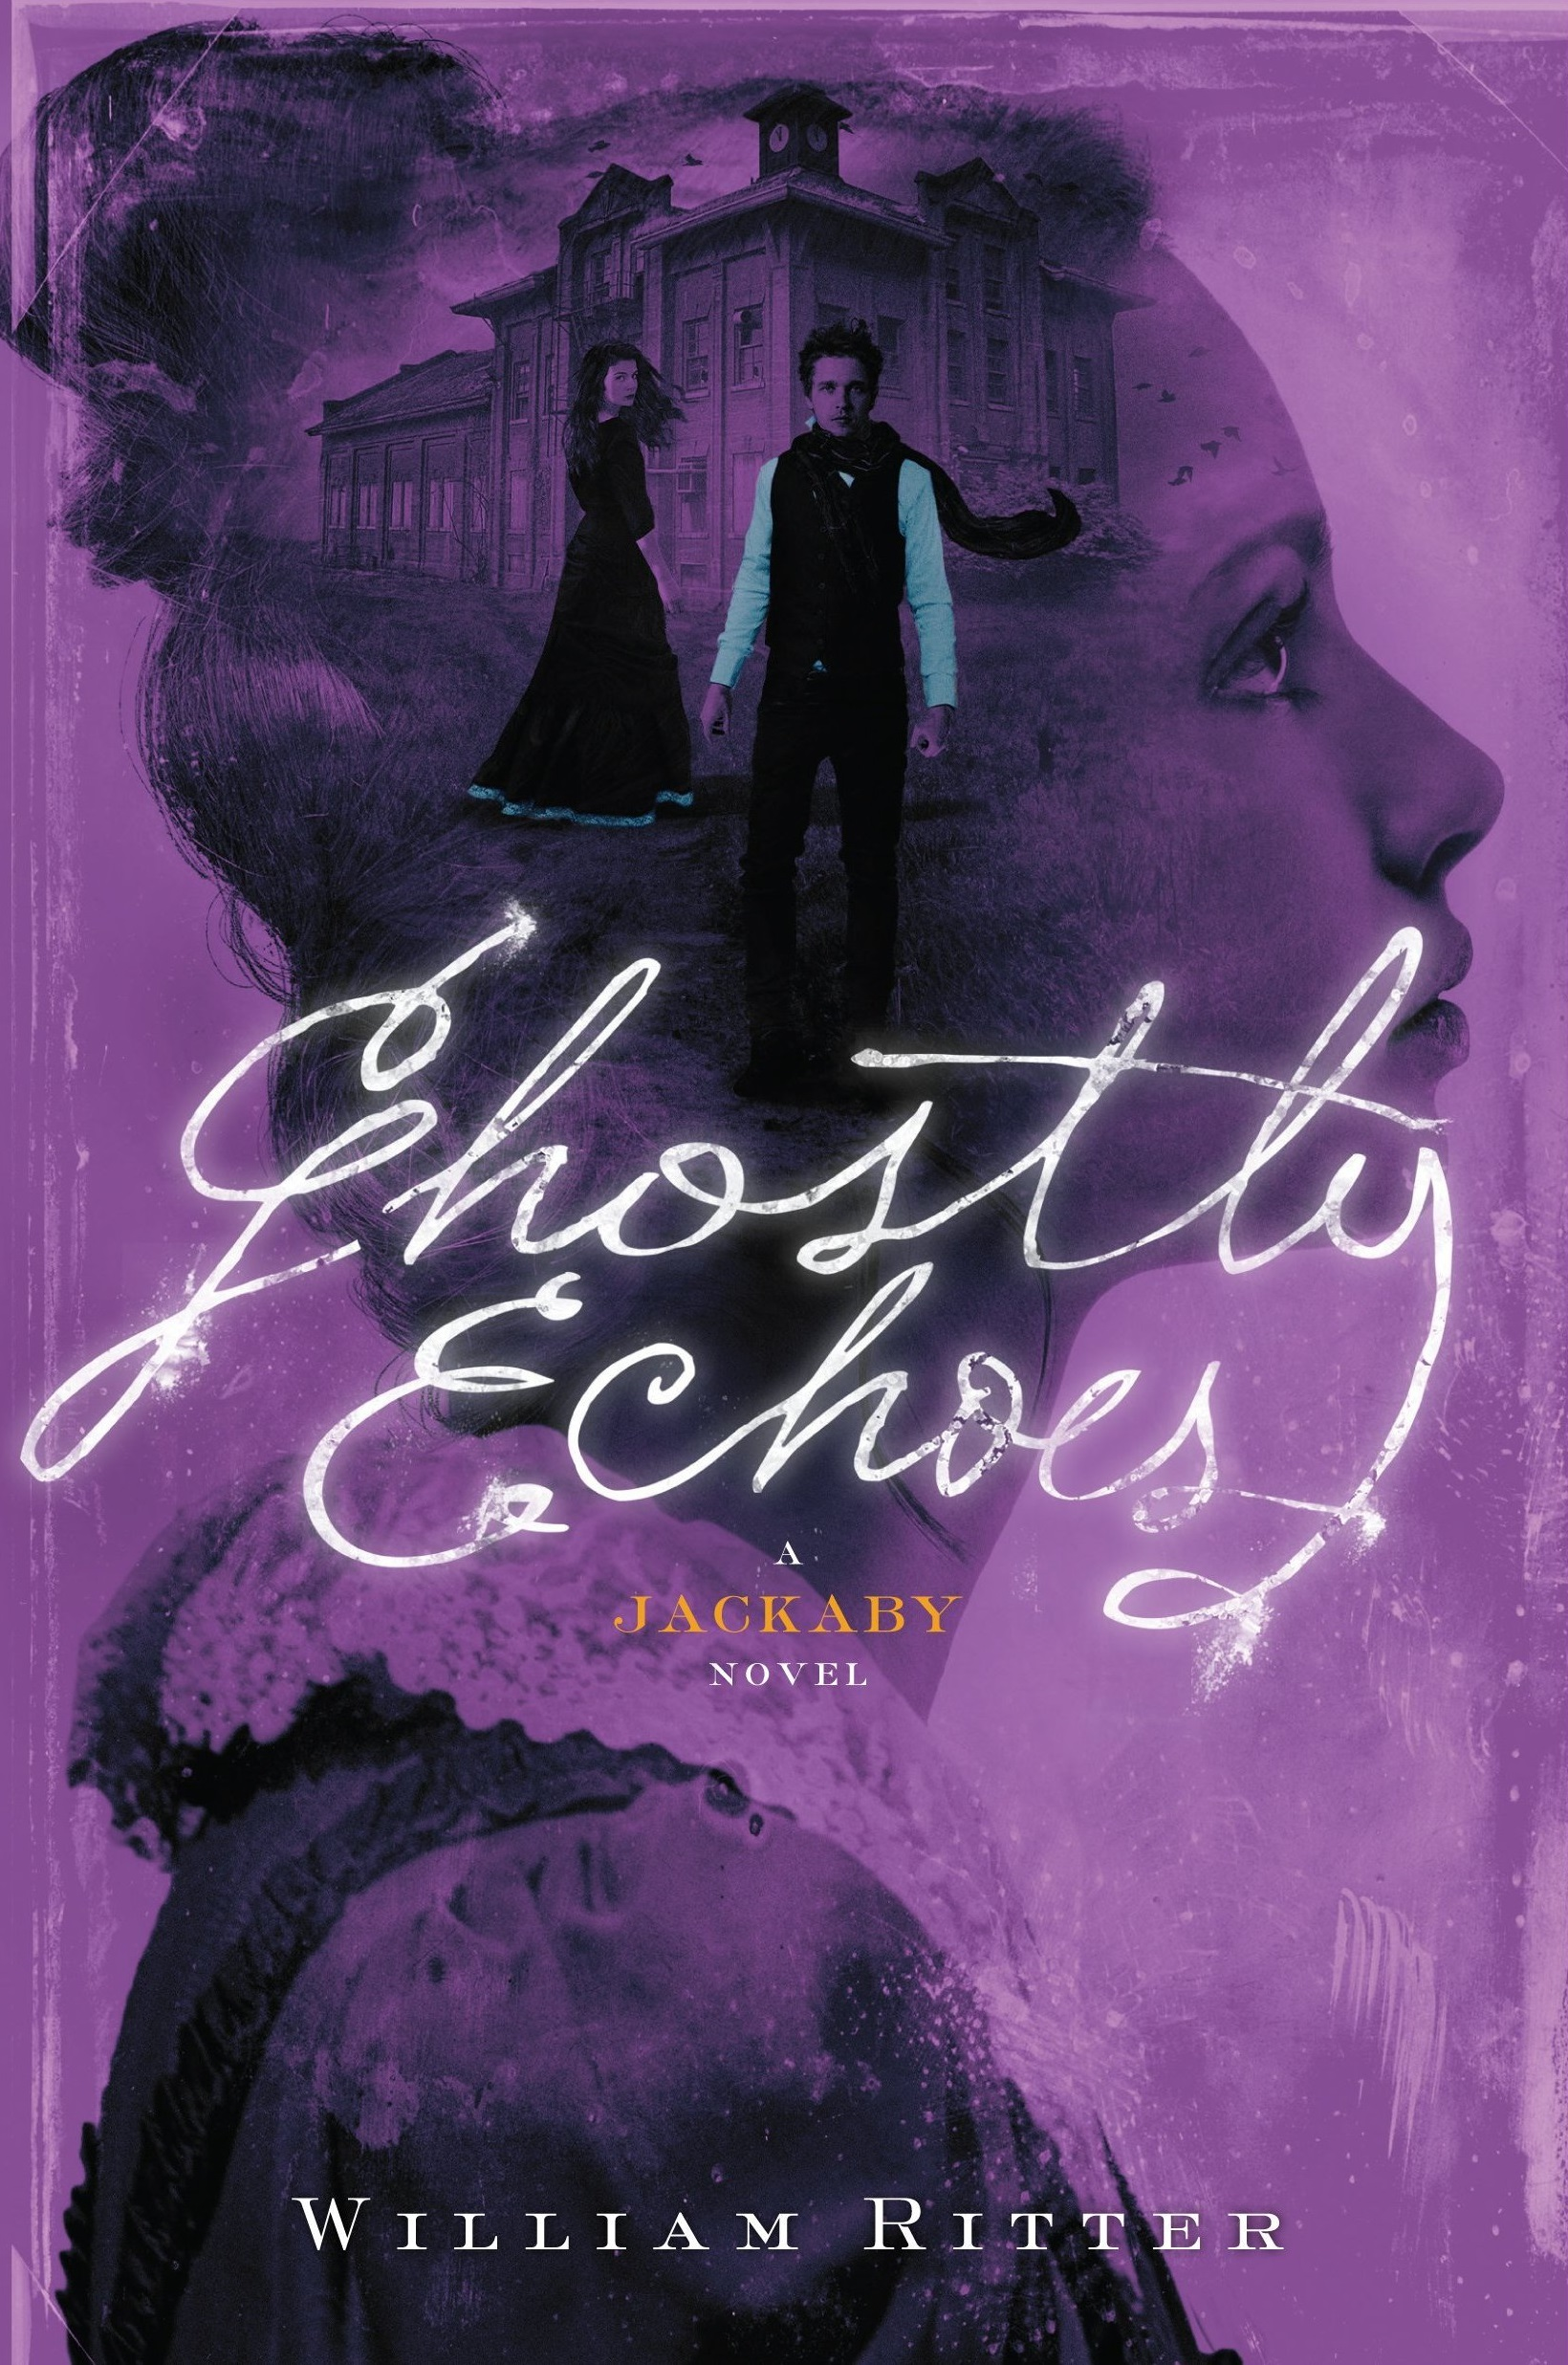 Review – Ghostly Echoes by William Ritter